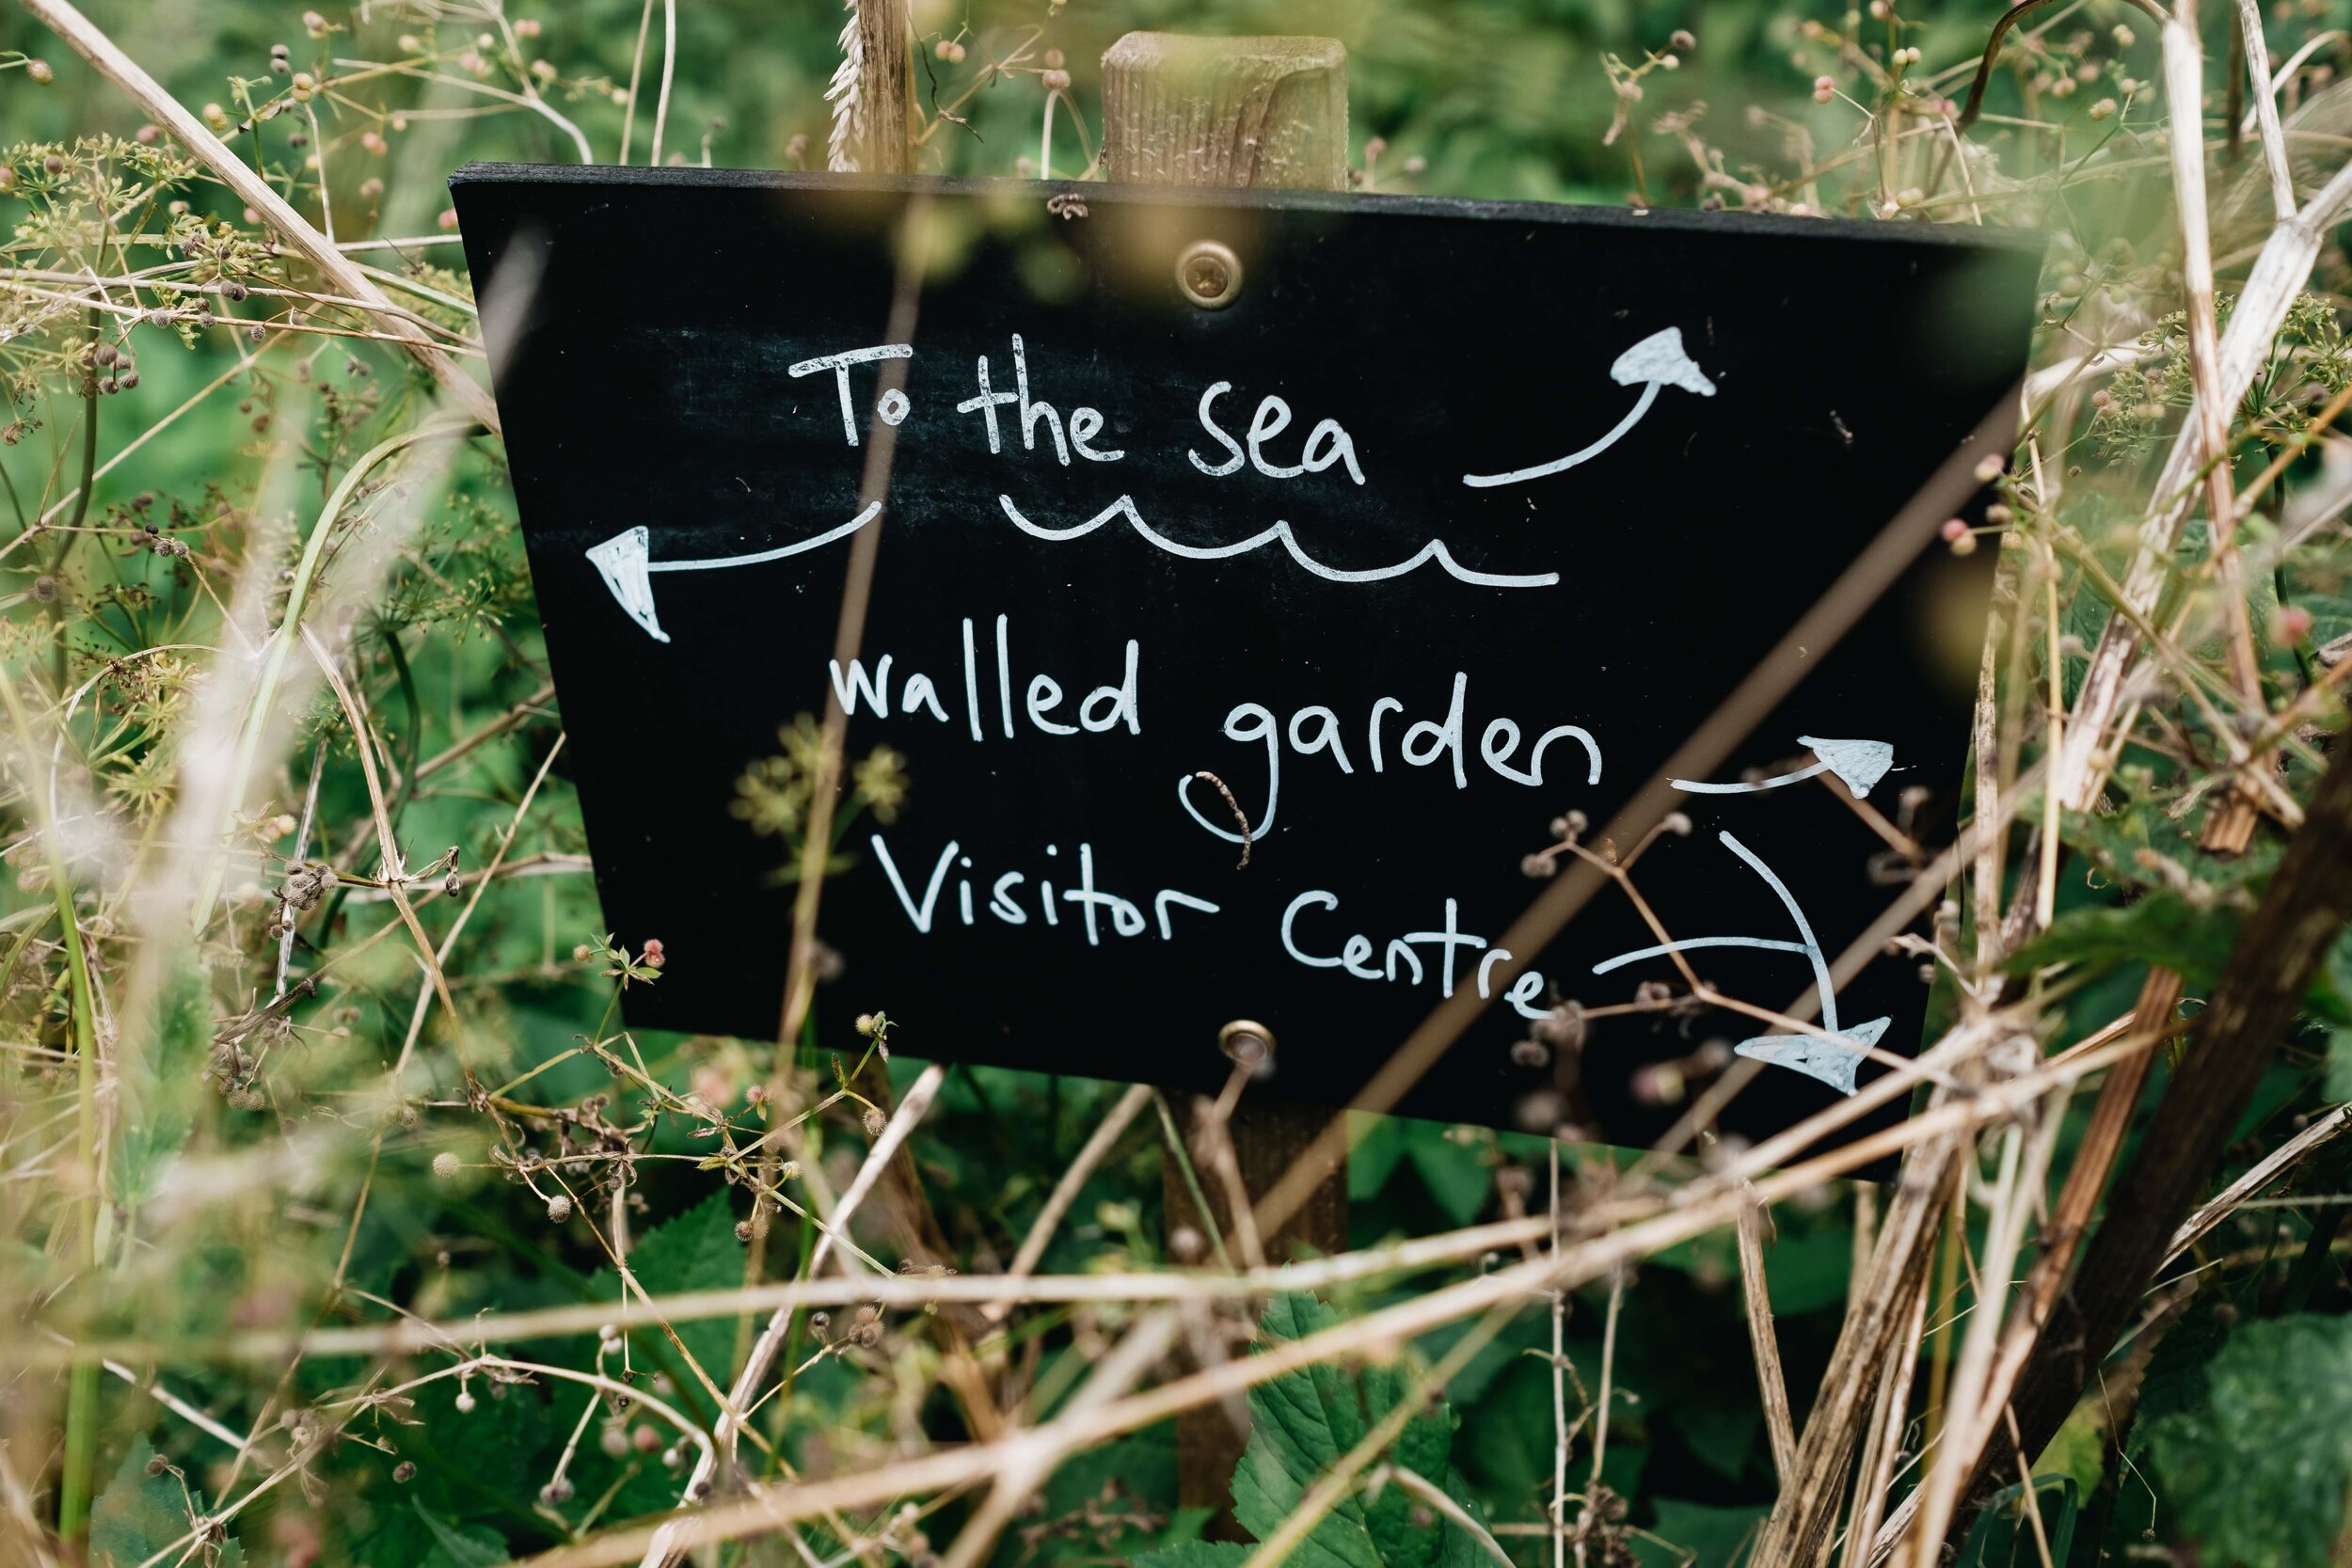 A black sign with white handwriting showing the direction of the sea and walled garden.